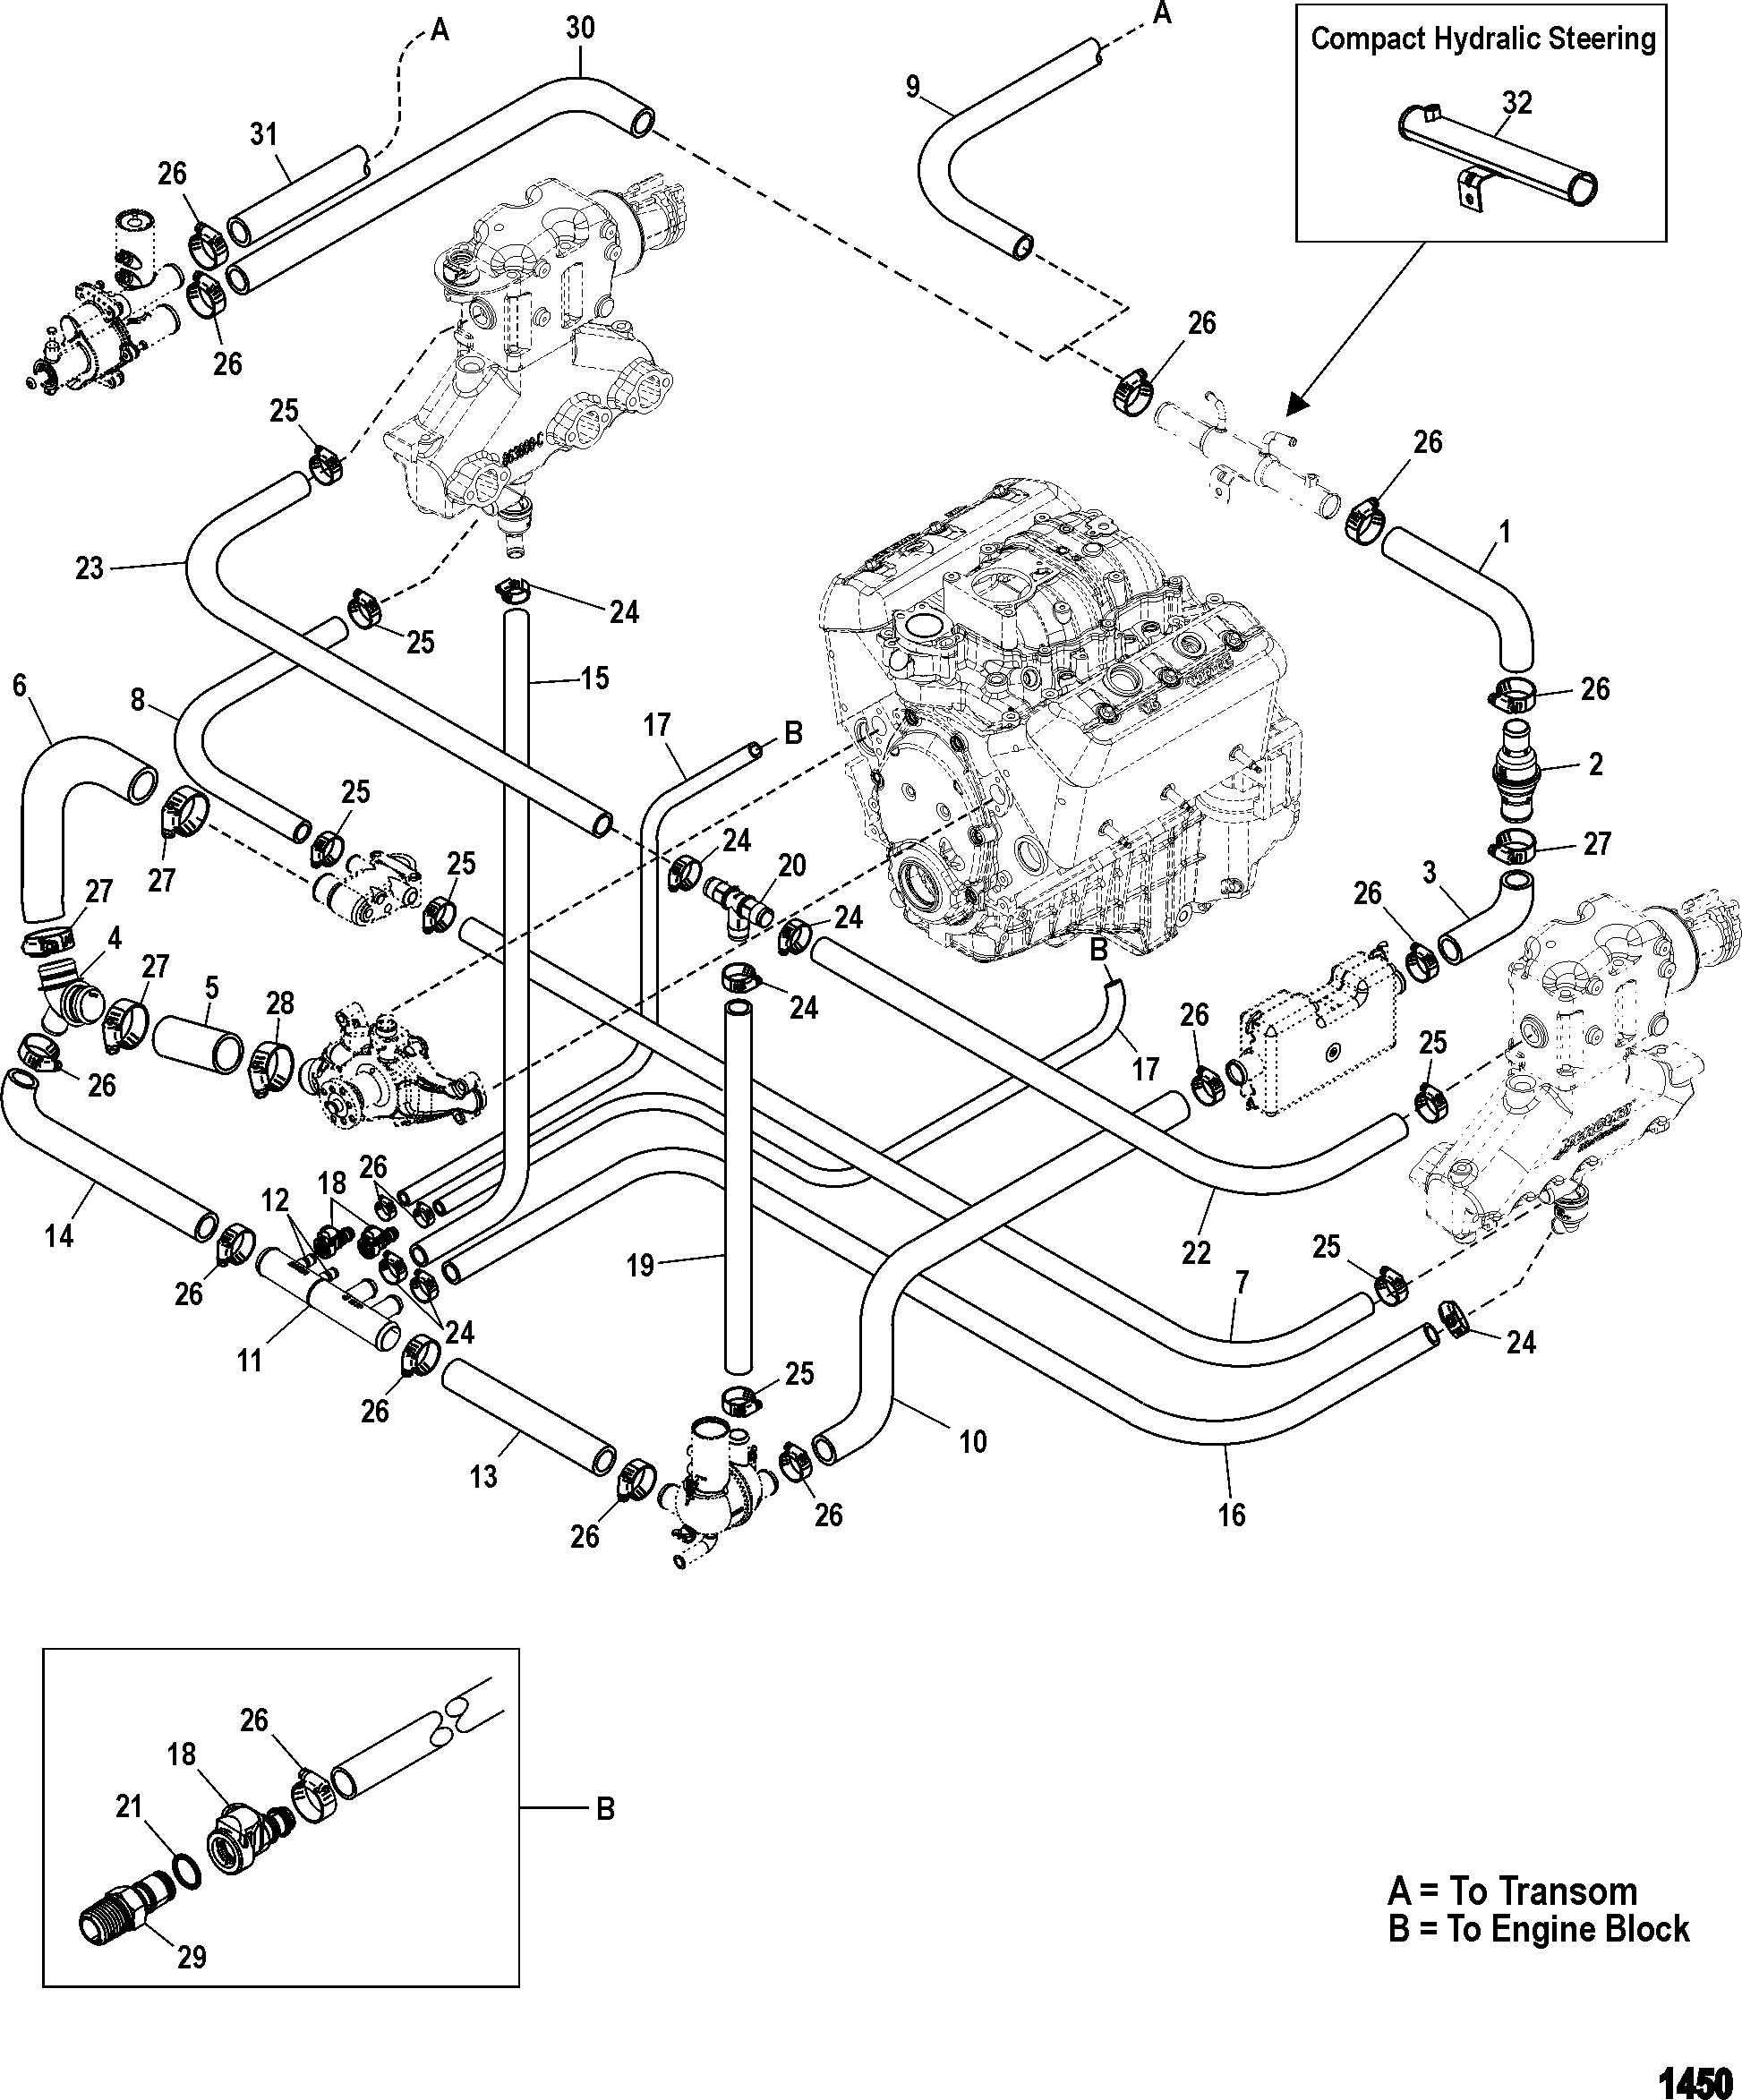 Mercruiser 140 Wiring Diagram Diagram Auto Wiring Diagram